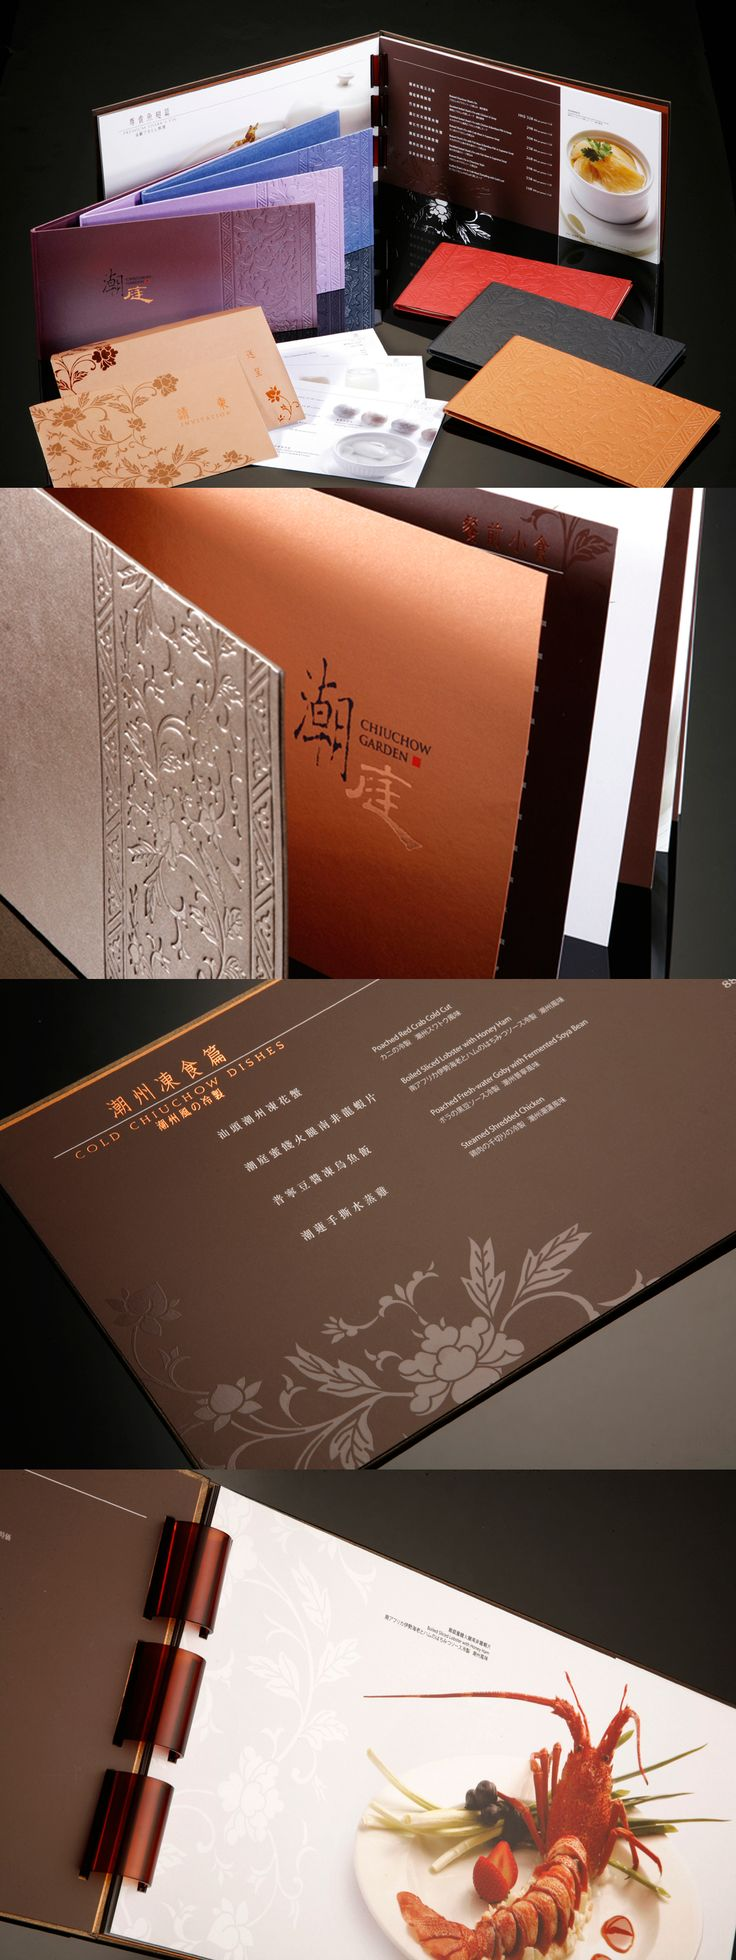 "Check out my @Behance project: ""Chinese Restaurant Menu Design"" https://www.behance.net/gallery/44810103/Chinese-Restaurant-Menu-Design"